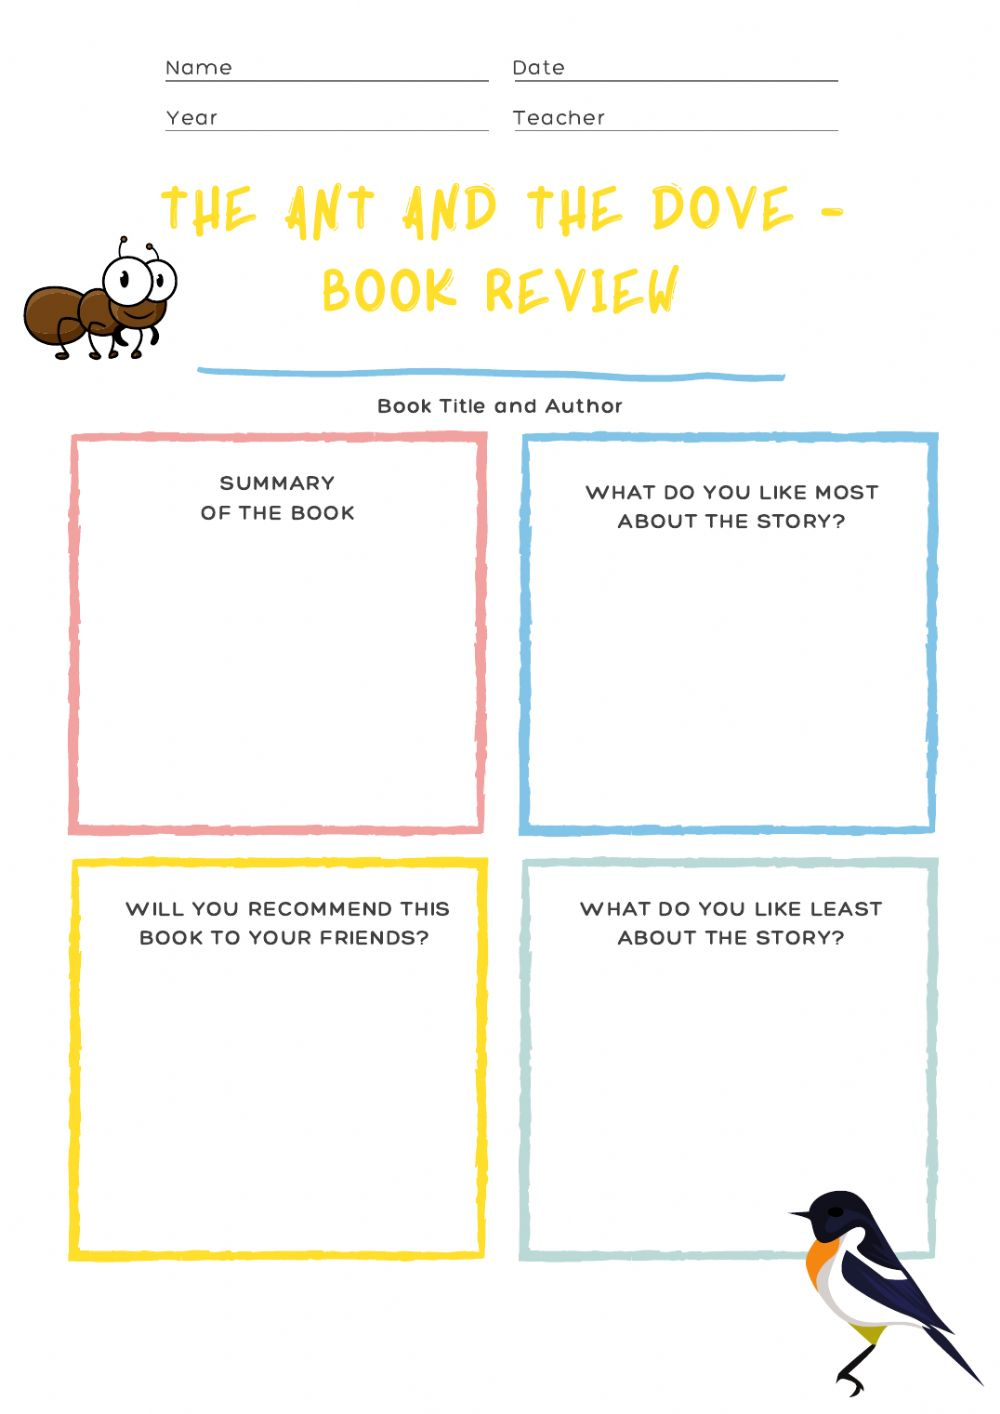 medium resolution of 02.12 - Book report! The ant and the dove worksheet